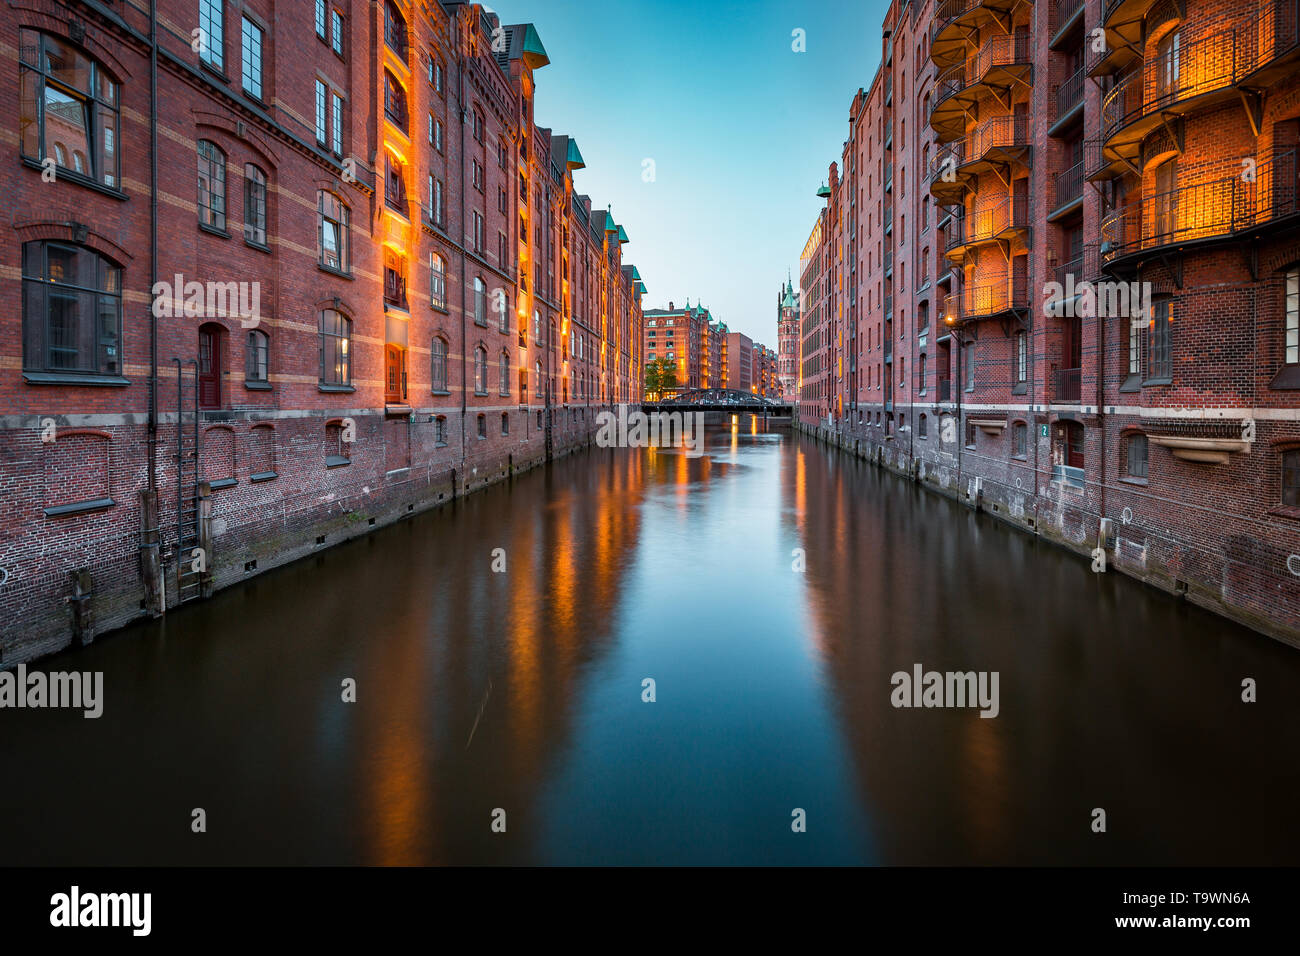 Classic view of famous Hamburg Speicherstadt warehouse district, a UNESCO World Heritage Site since 2015, illuminated in beautiful twilight - Stock Image